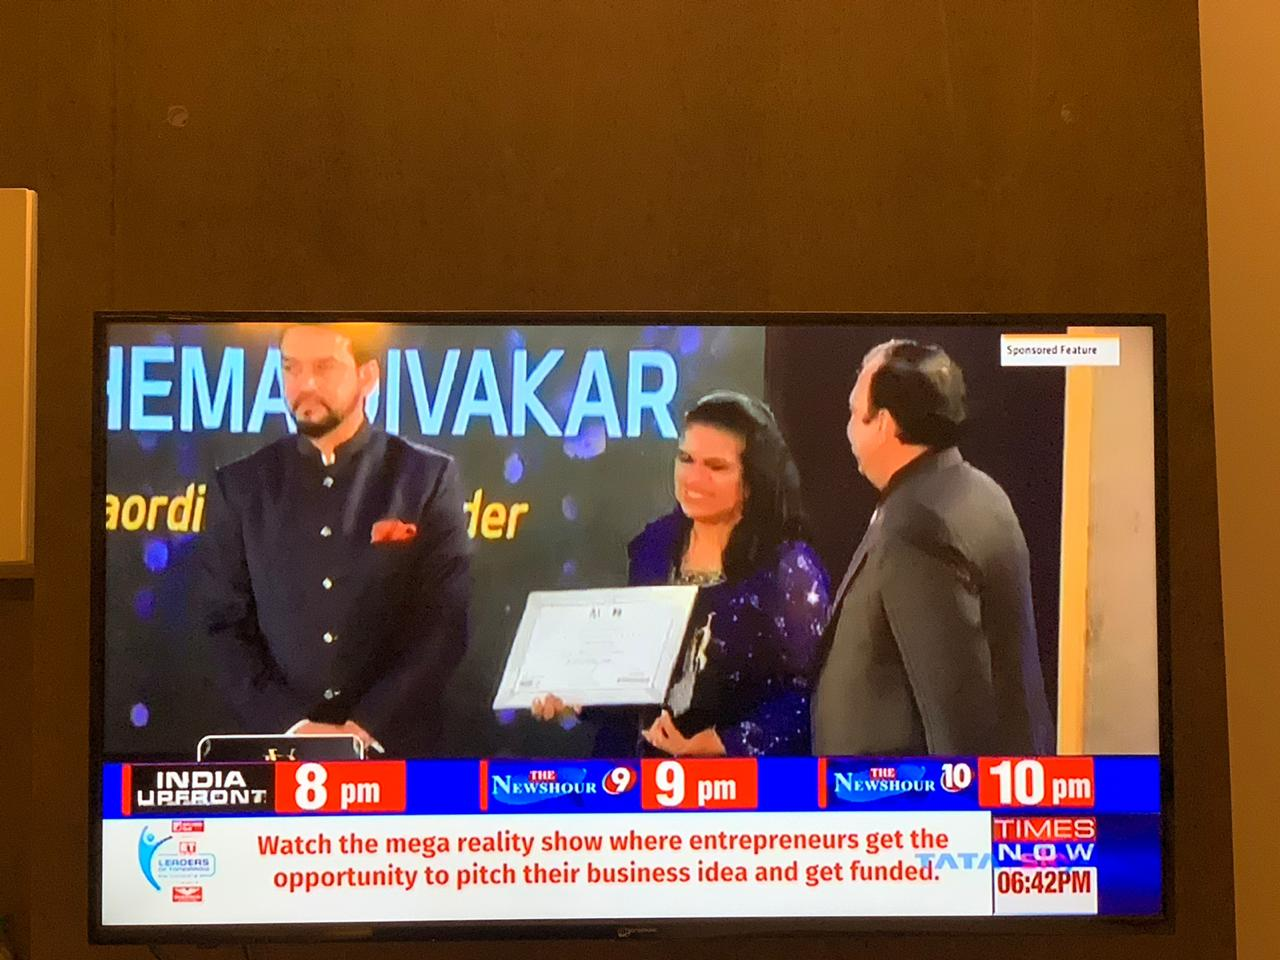 Times Now - Brand Vision Summit 2019-2020